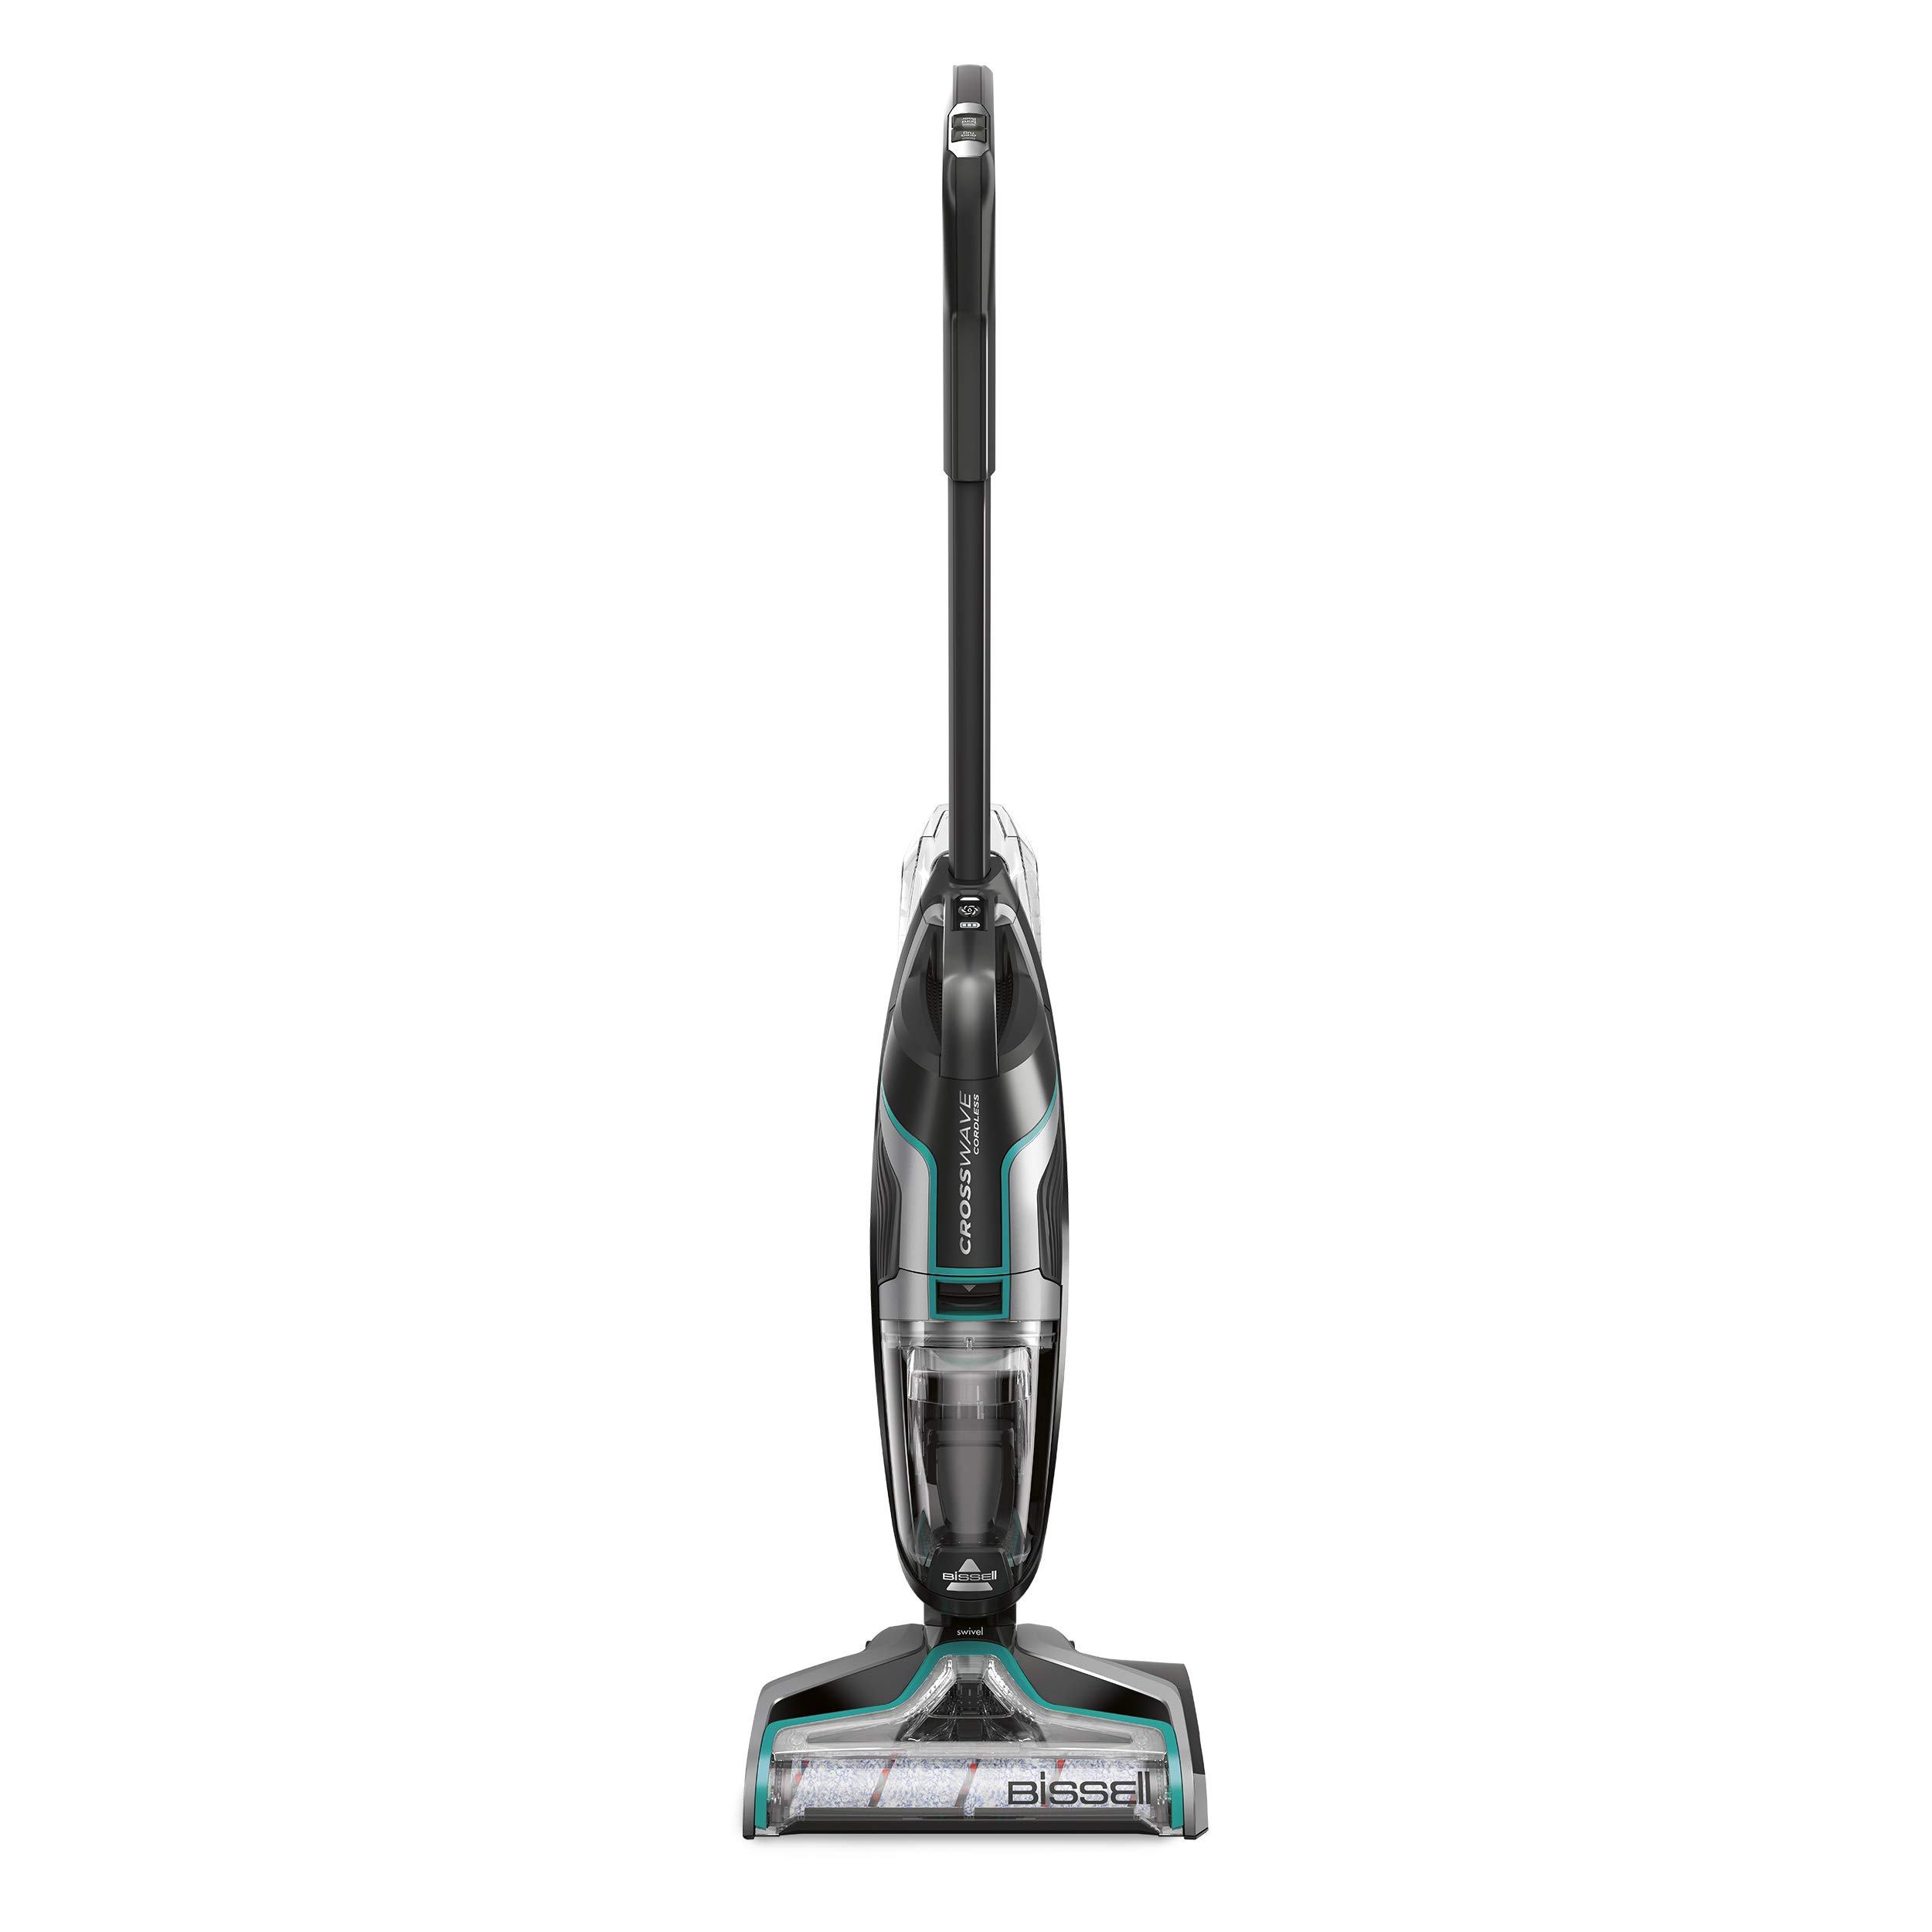 BISSELL CrossWave Cordless Floor and and Carpet Cleaner with Wet-Dry Vacuum, 2551, Black by Bissell (Image #1)